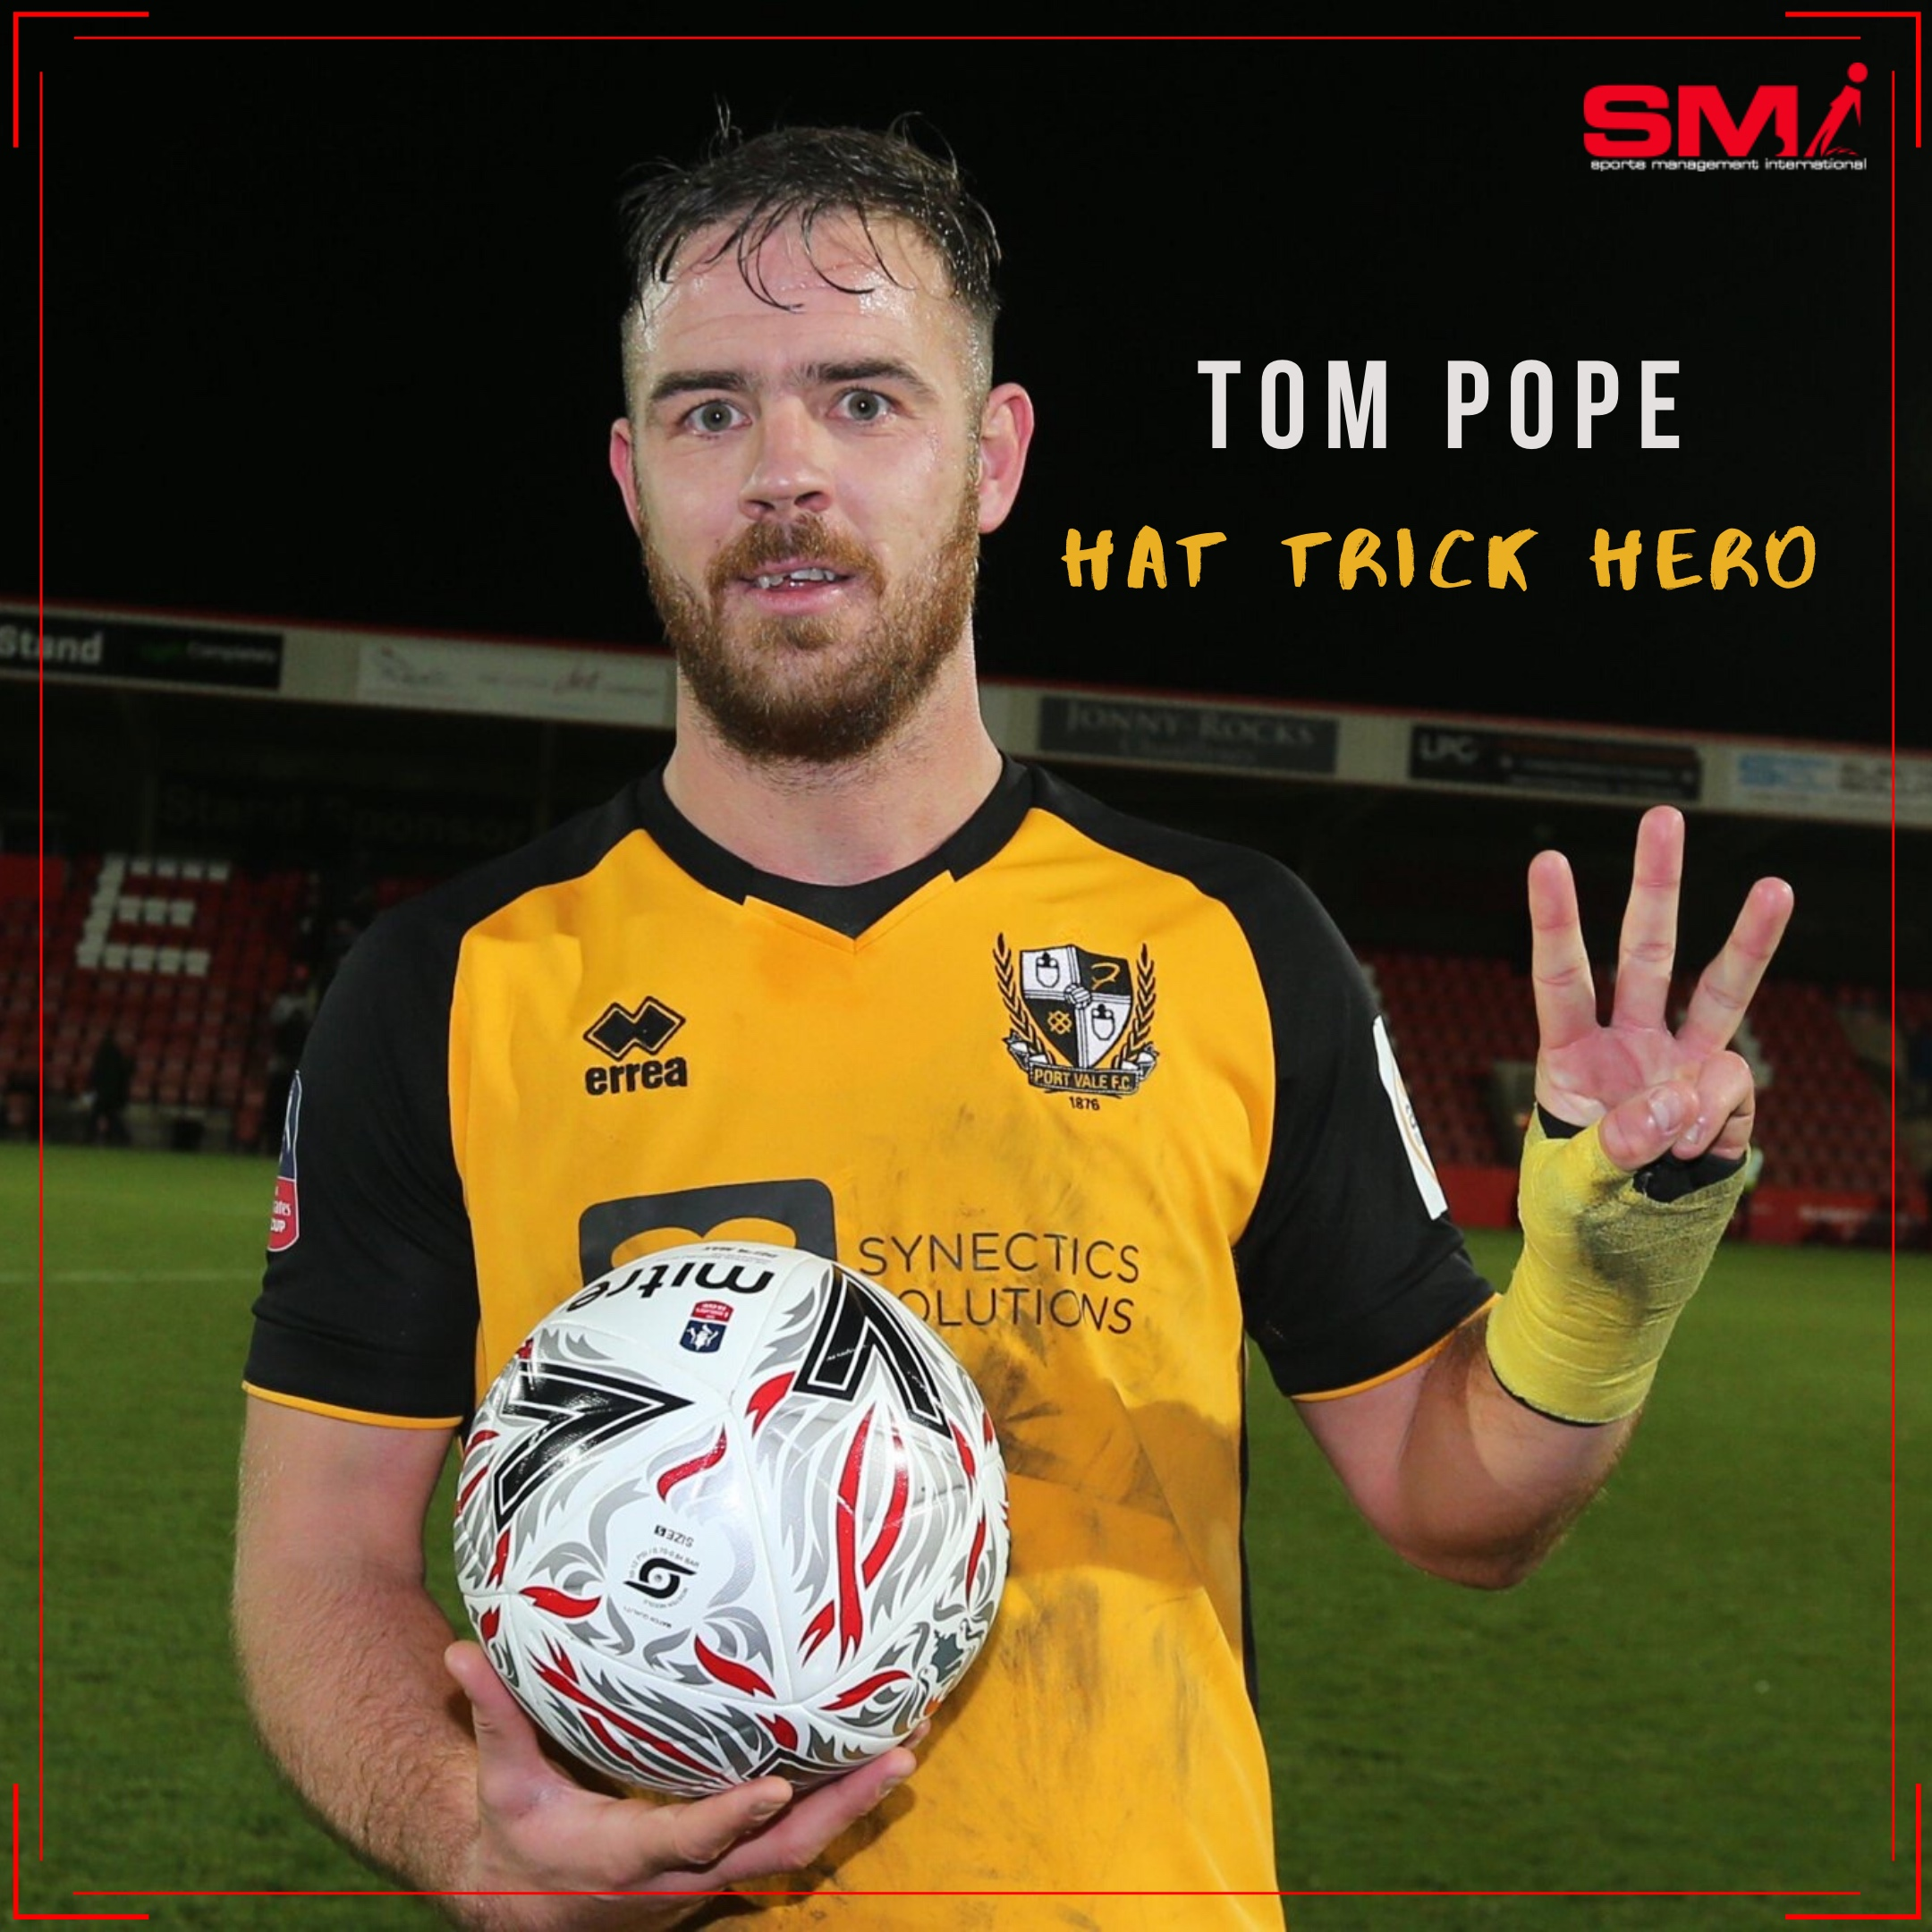 Another Pope hat trick takes them through to face Man City!